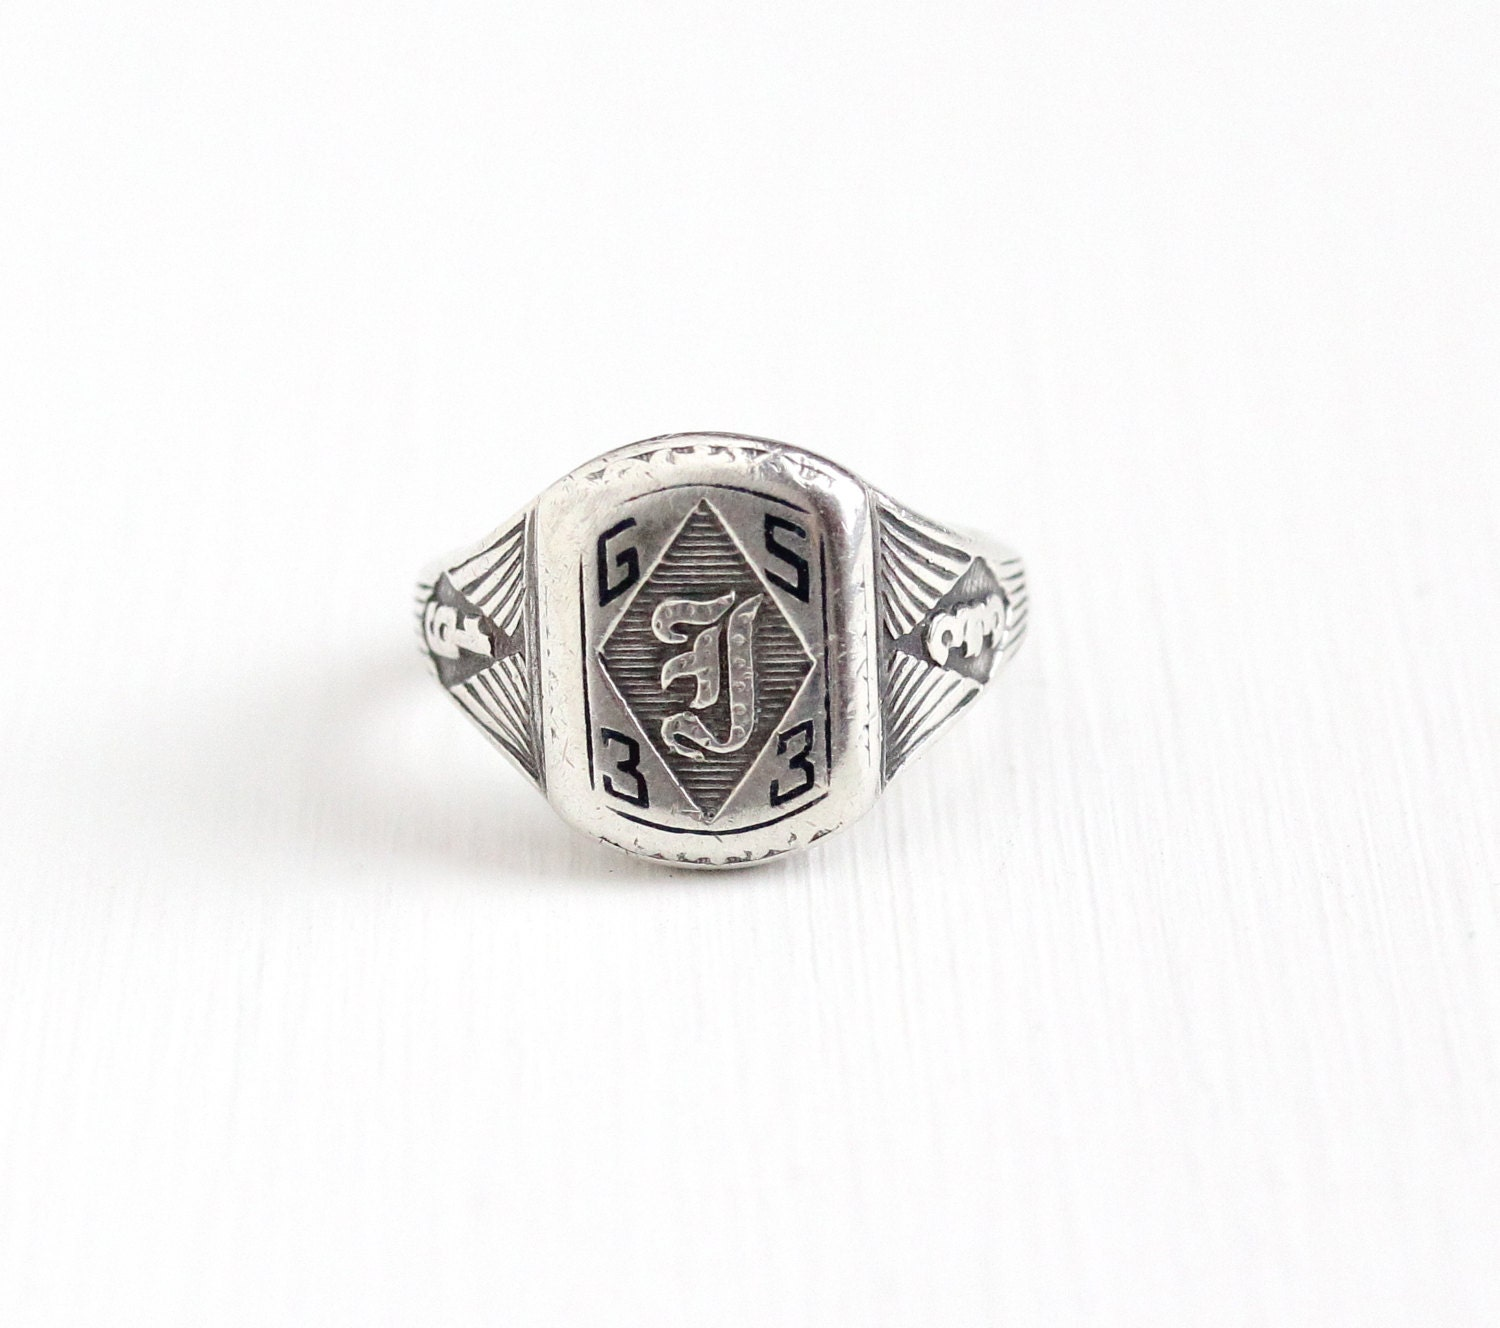 sale vintage sterling silver 1933 gs signet class ring